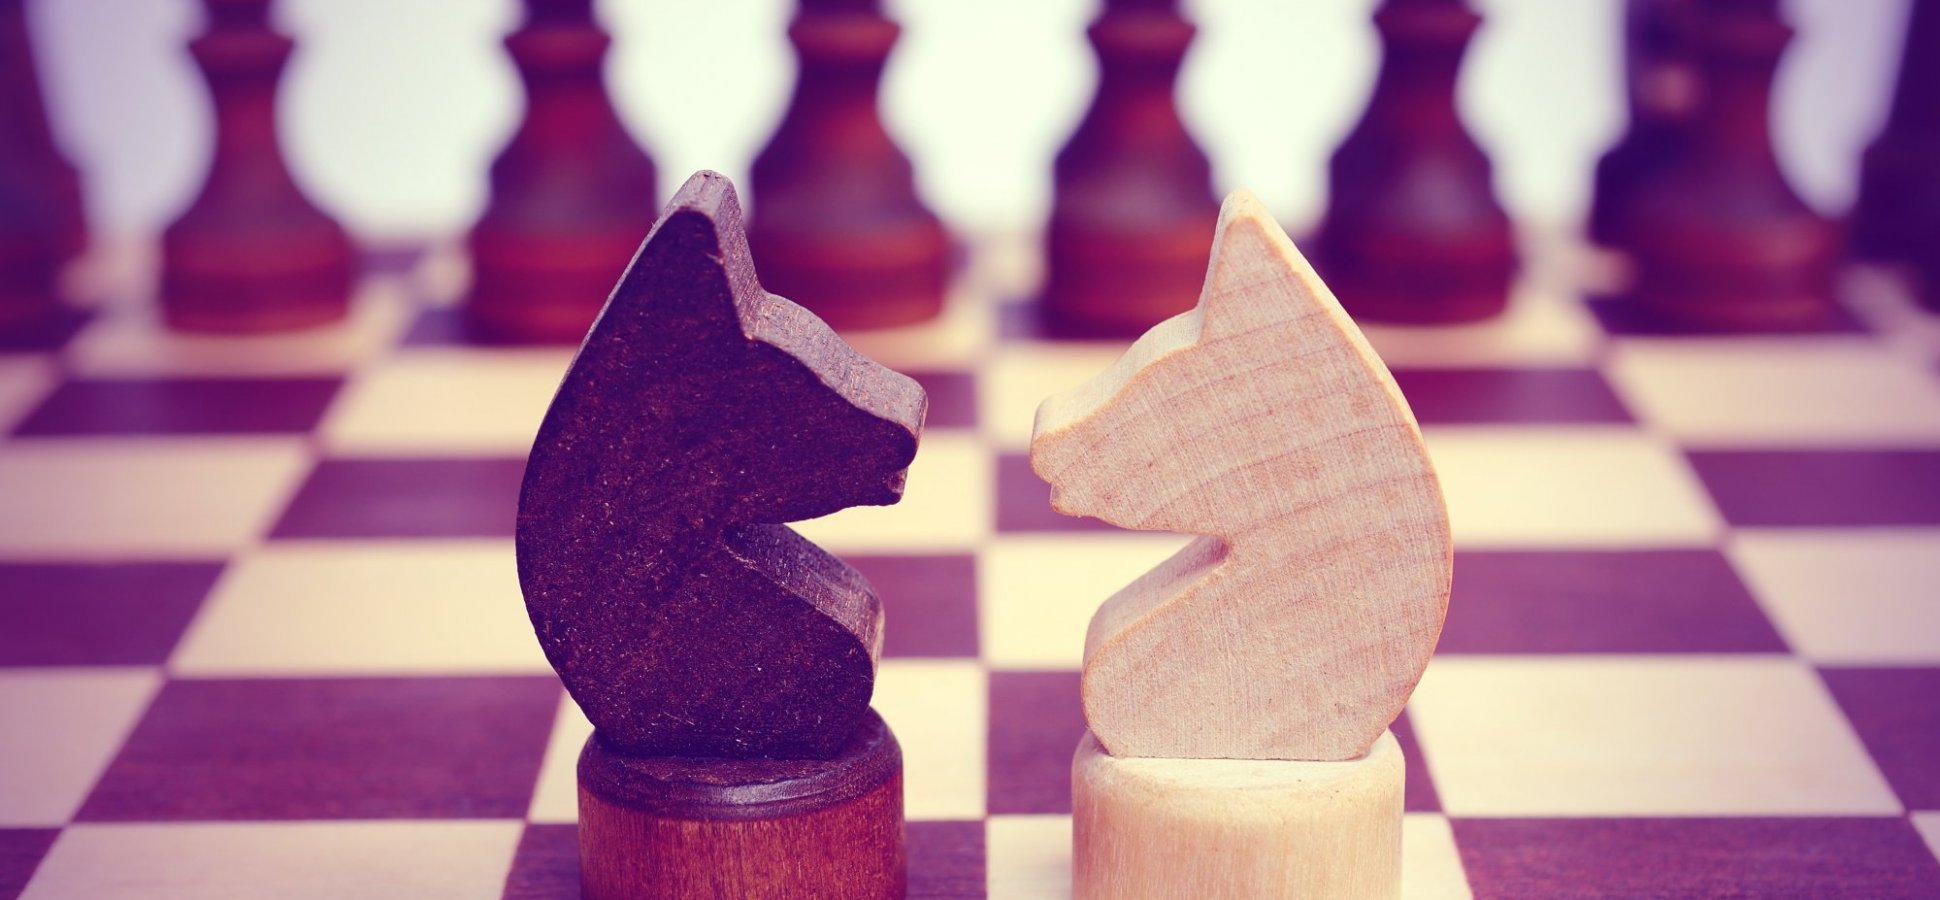 Use This Simple Strategy to Handle Any Conflict Like a Pro